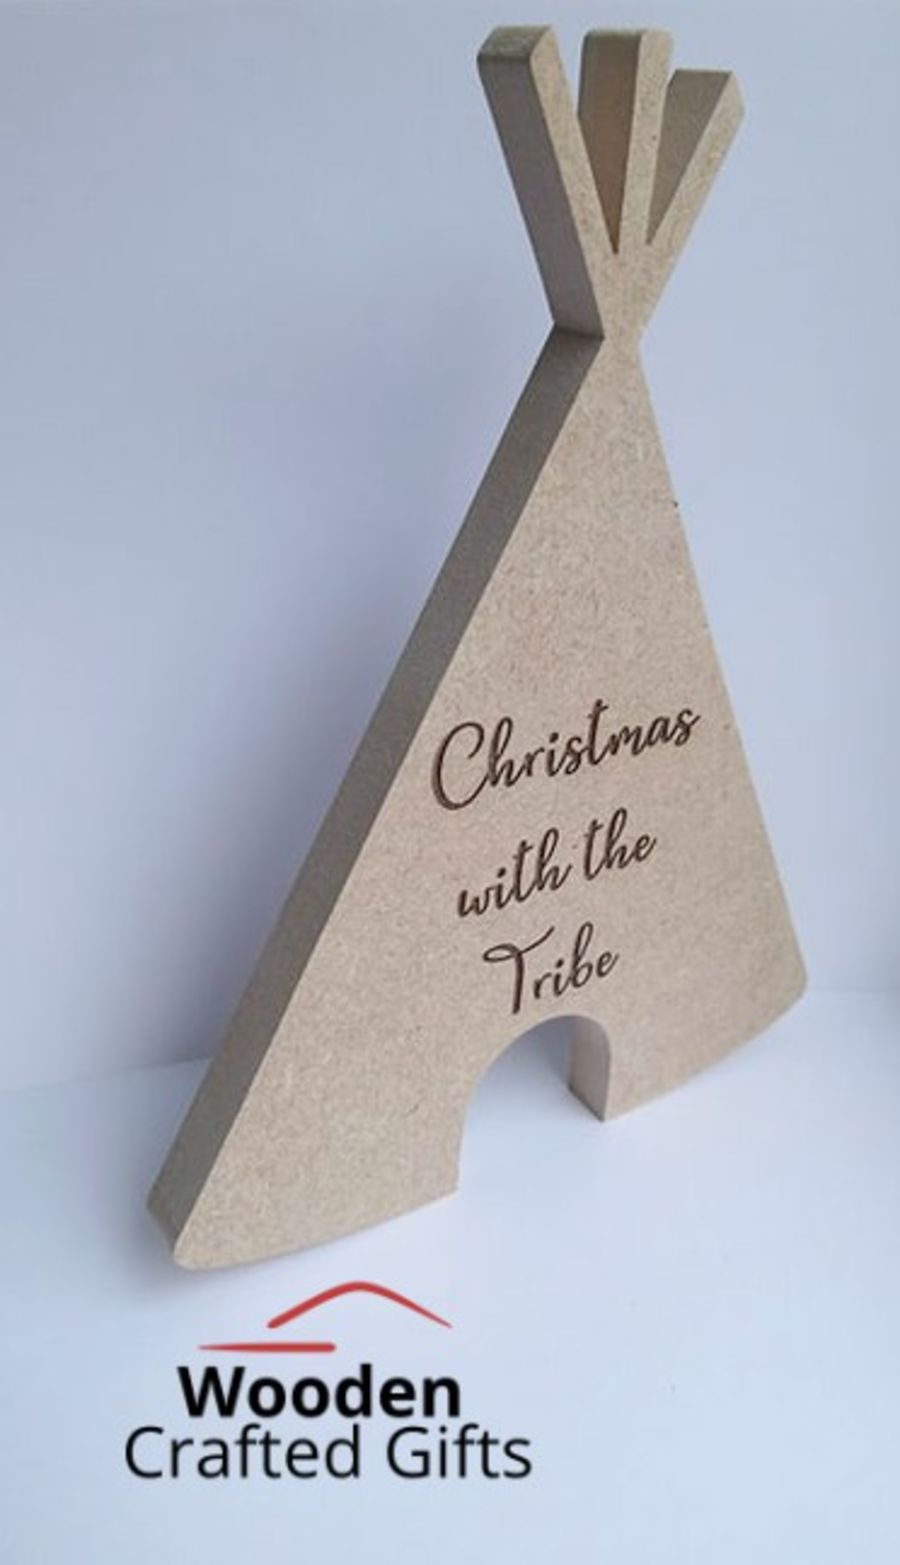 Freestanding Tepee Shape - Engraved - Christmas with the Tribe